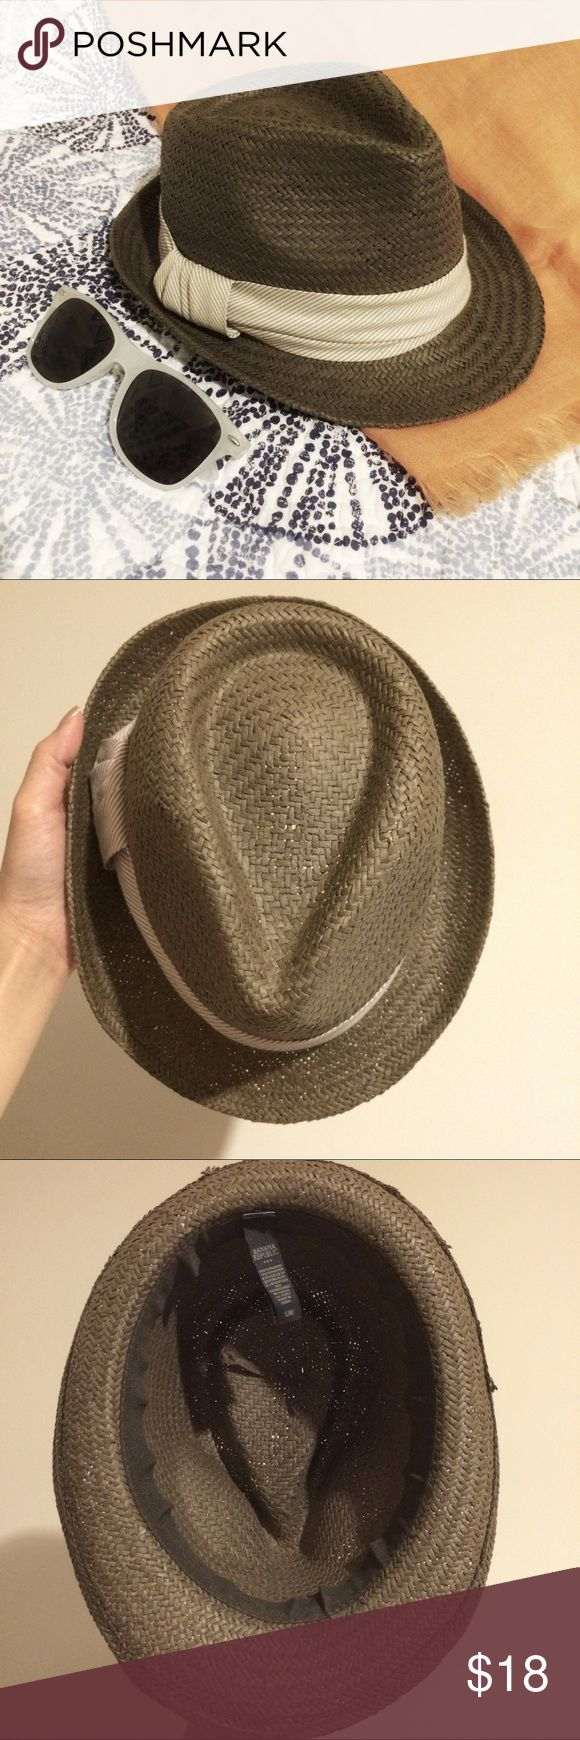 Banana Republic Woven Fedora Great neutral hat for many outfits. Brown with striped band containing silver and light brown stripes. Size S/M. Lovely with shorts and rolled up sleeves for summer. Worn only 3 times, and like new. No holes, creases or stains. Banana Republic Accessories Hats